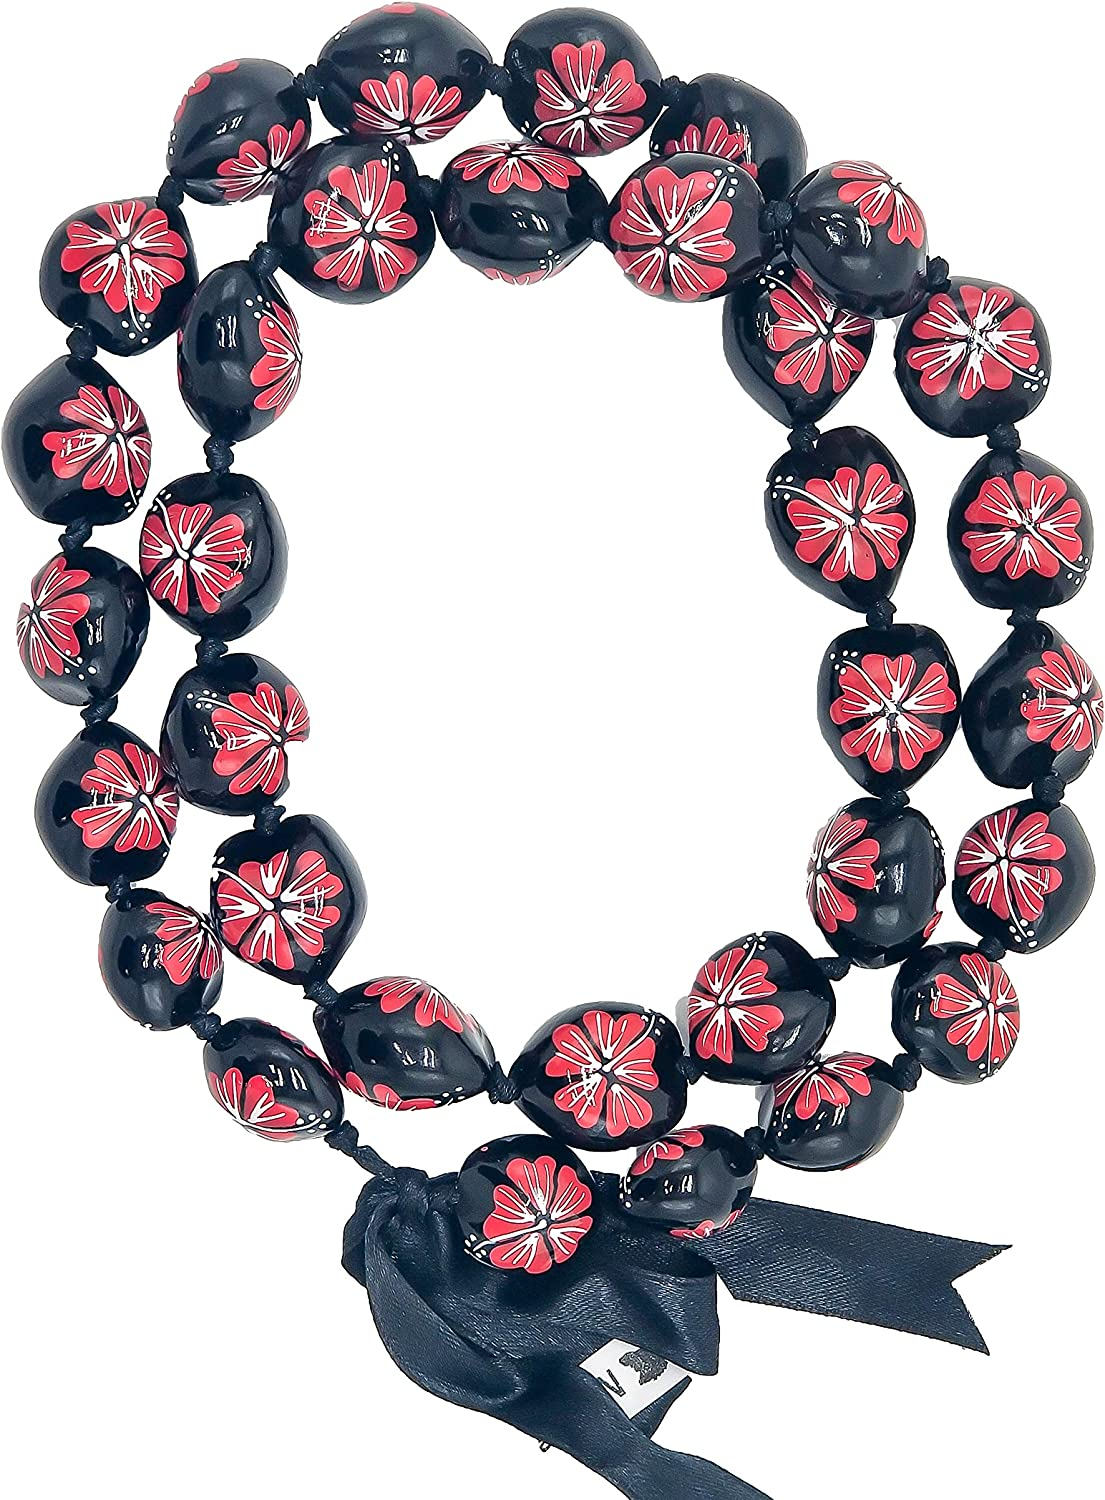 Hawaiian Kukui Nut Leis Beads Necklaces with Hand Painted Flower Adjustable 32 inches Lei for Men and Women